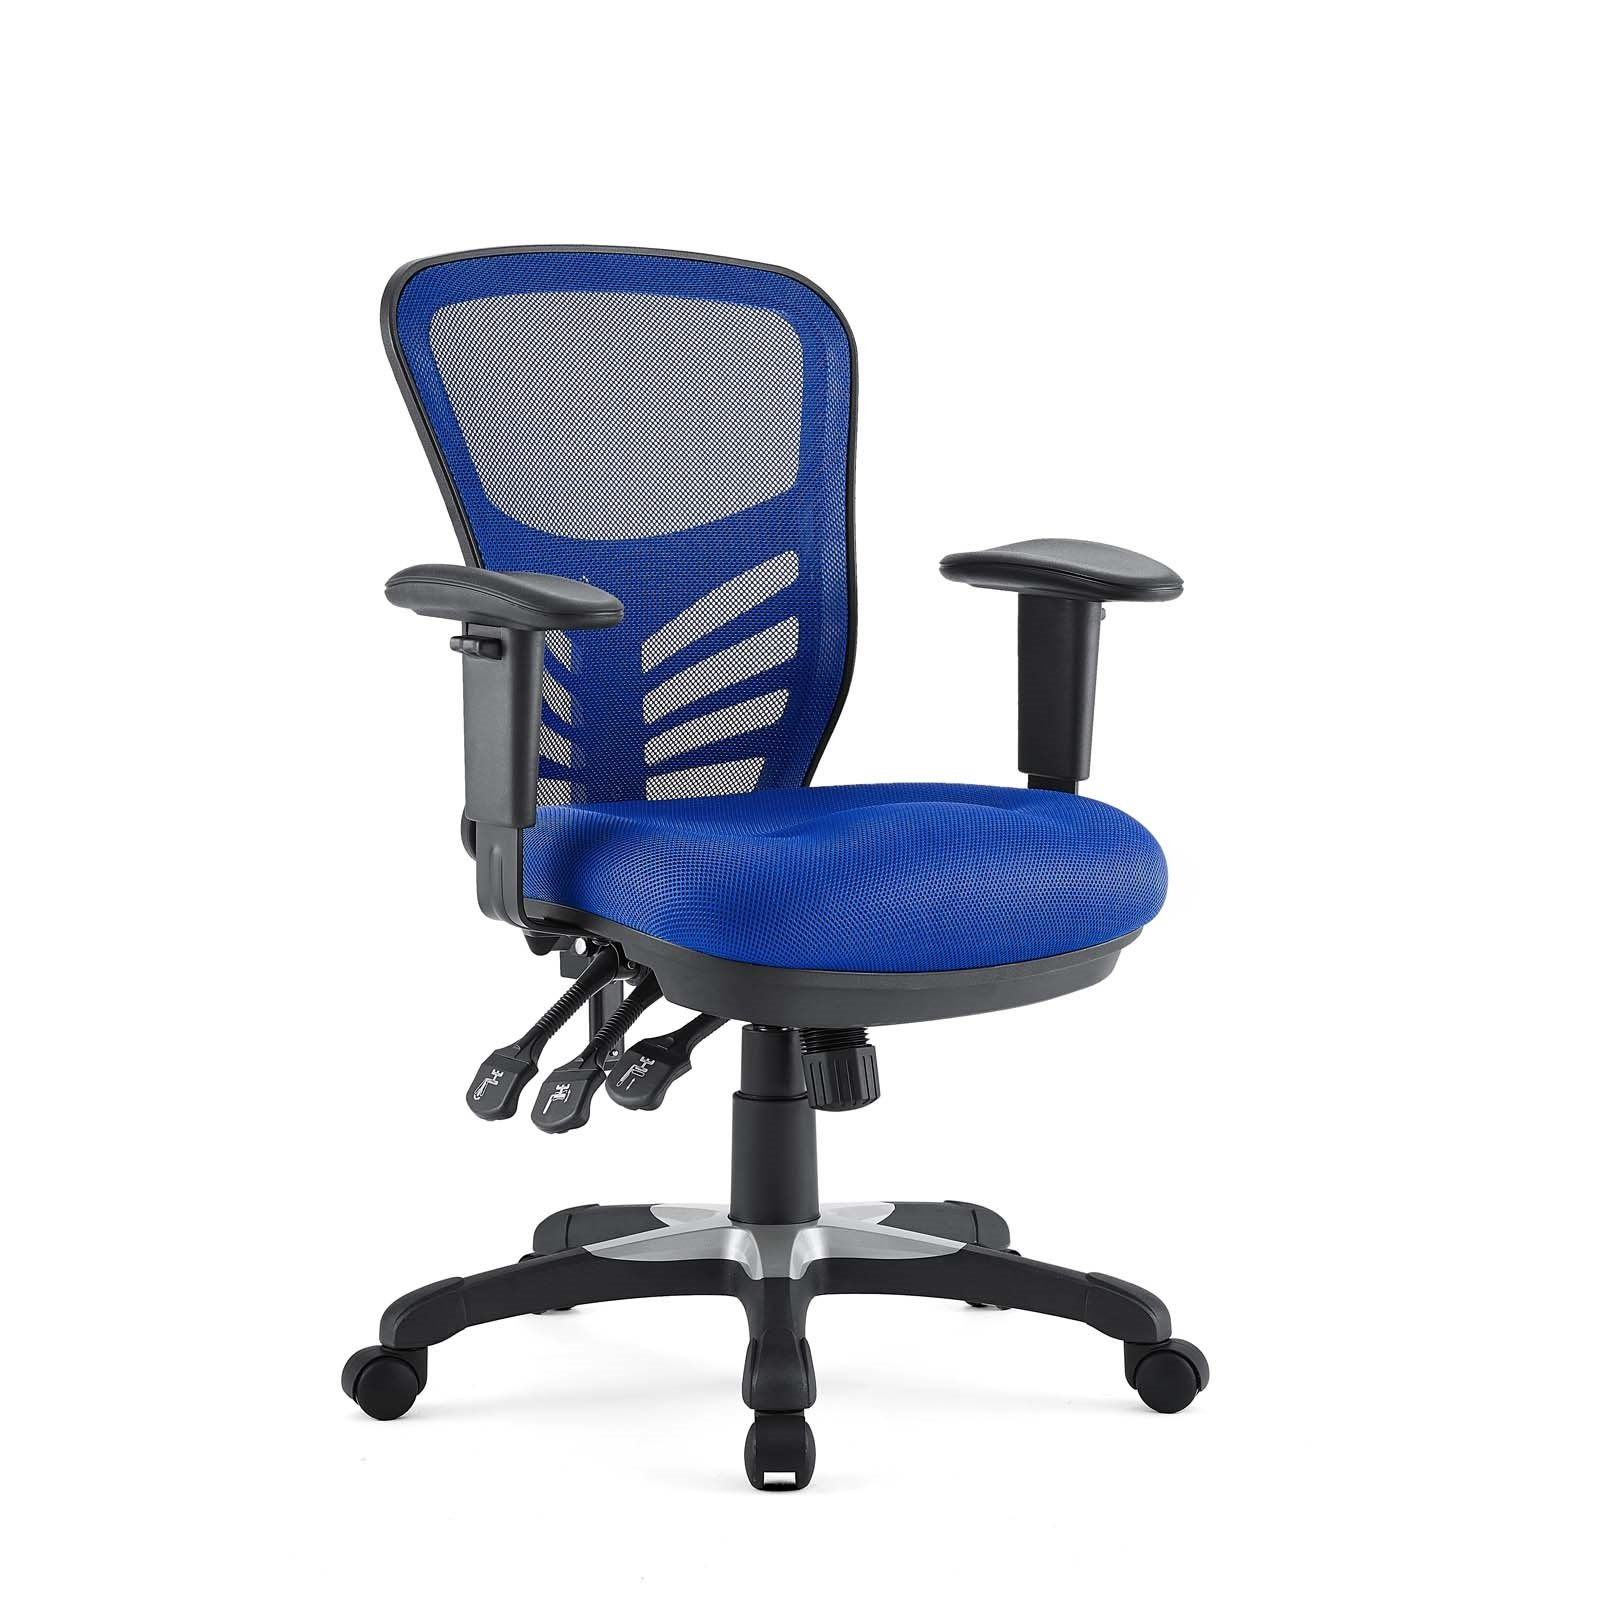 Mesh Office Chair in Blue